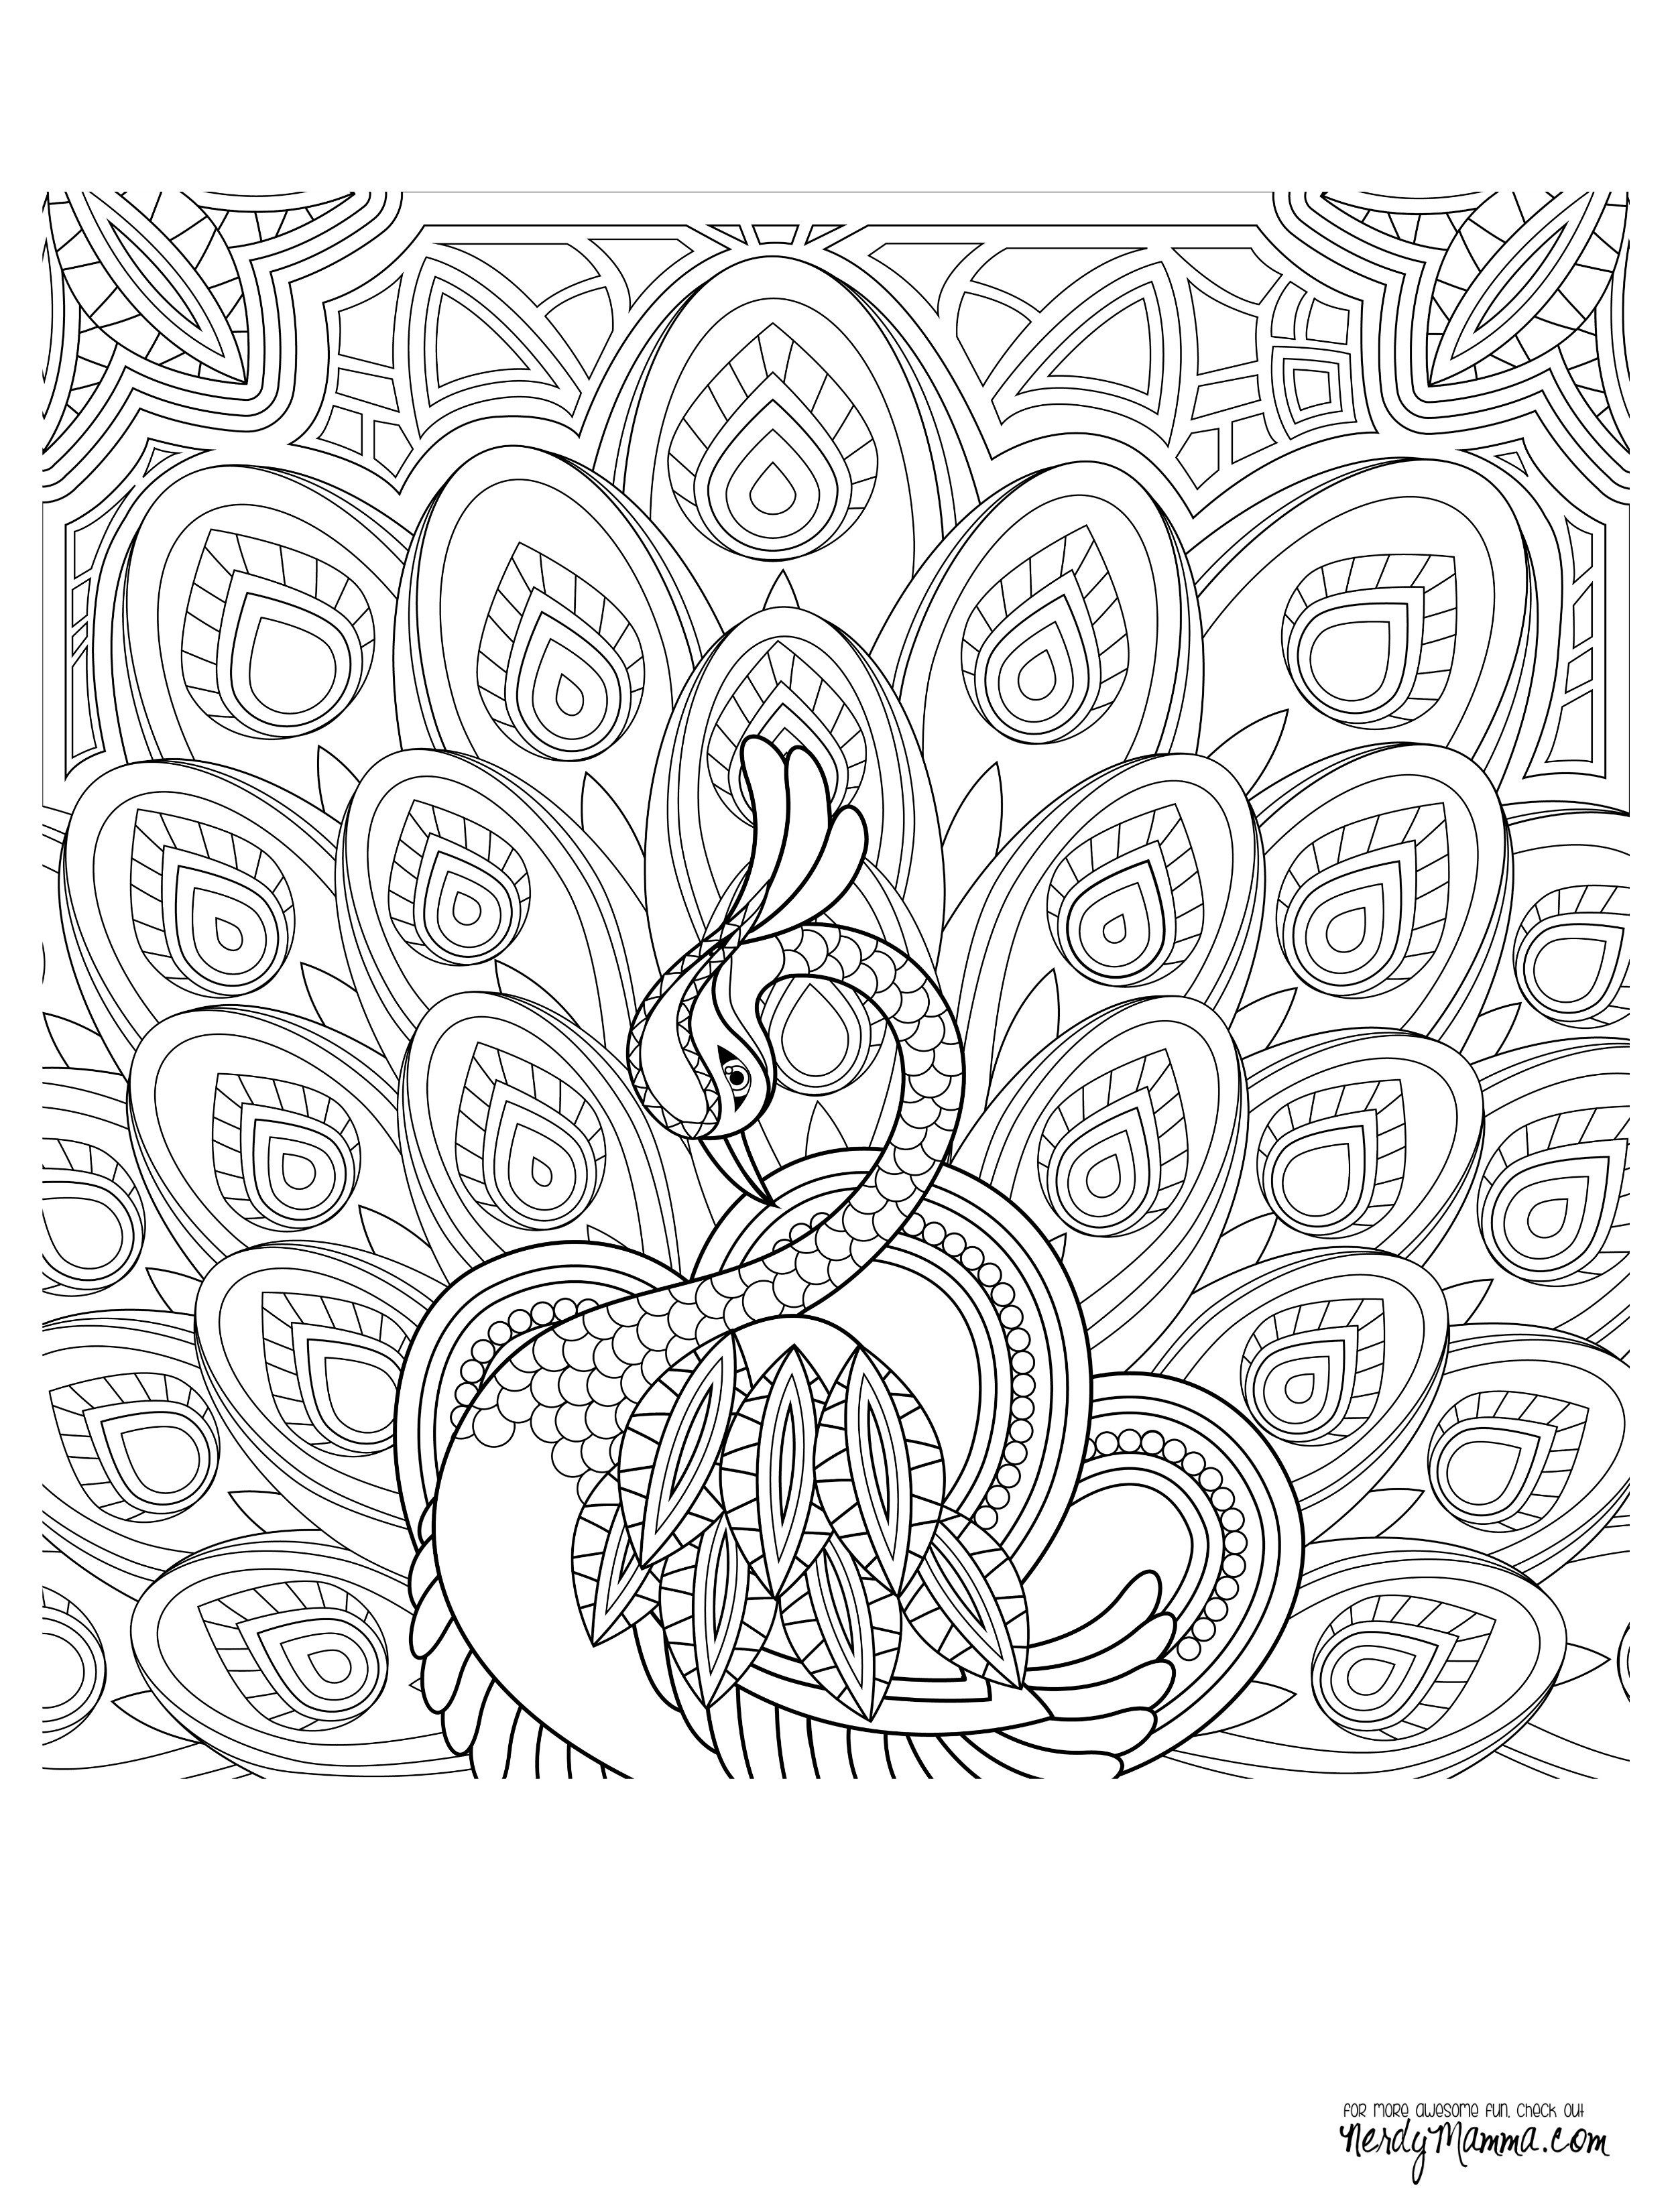 nature mandala coloring pages Download-Peacock Feather Coloring pages colouring adult detailed advanced printable Kleuren voor volwassenen coloriage pour adulte anti stress kleurplaat voor 12-n